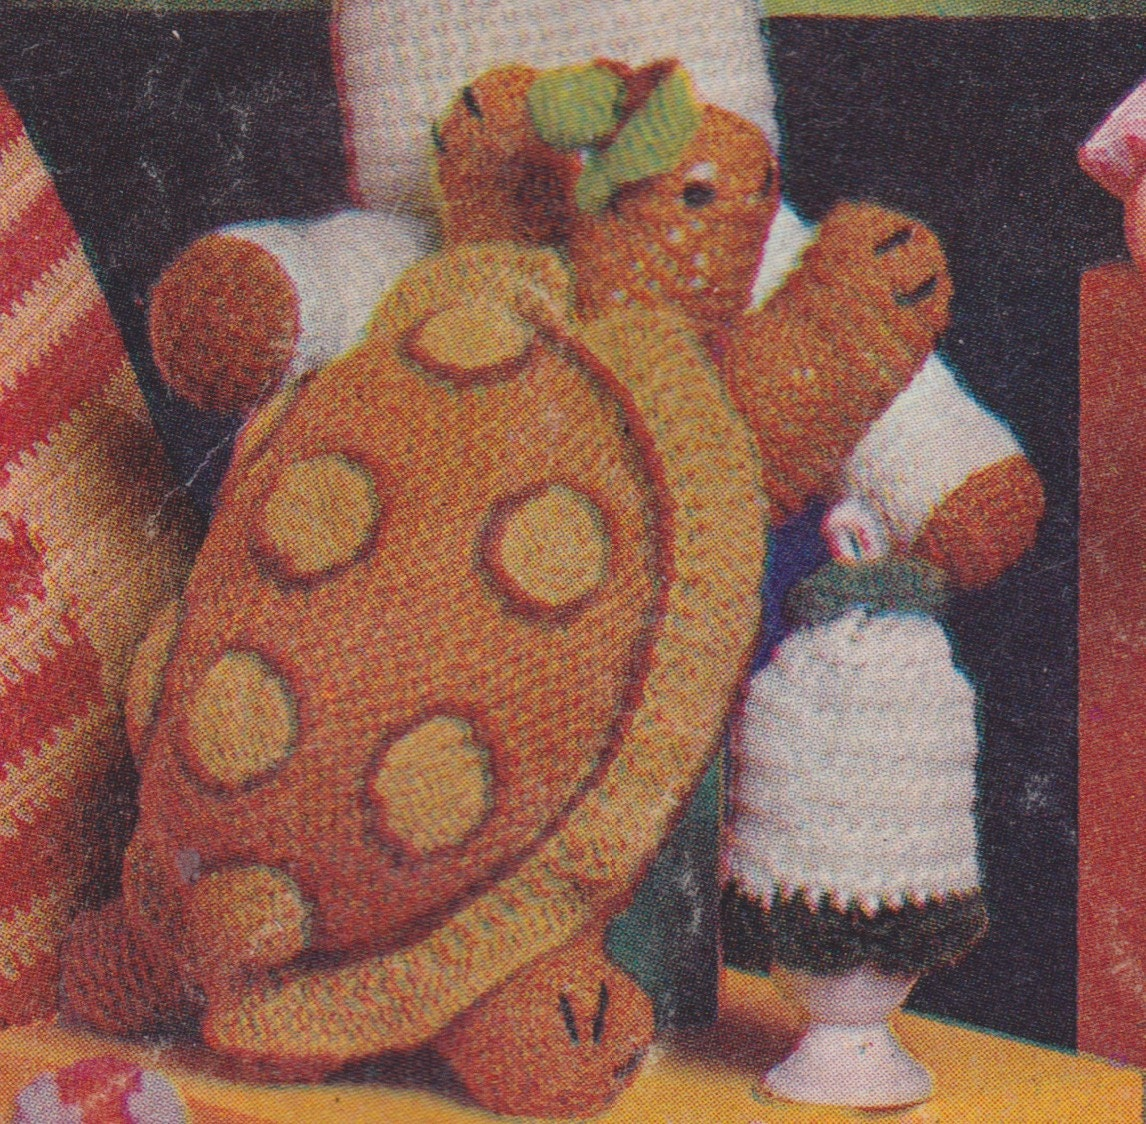 Tortoise Clothes Knitting Pattern : Pdf tortoise knitting pattern vintage instructions